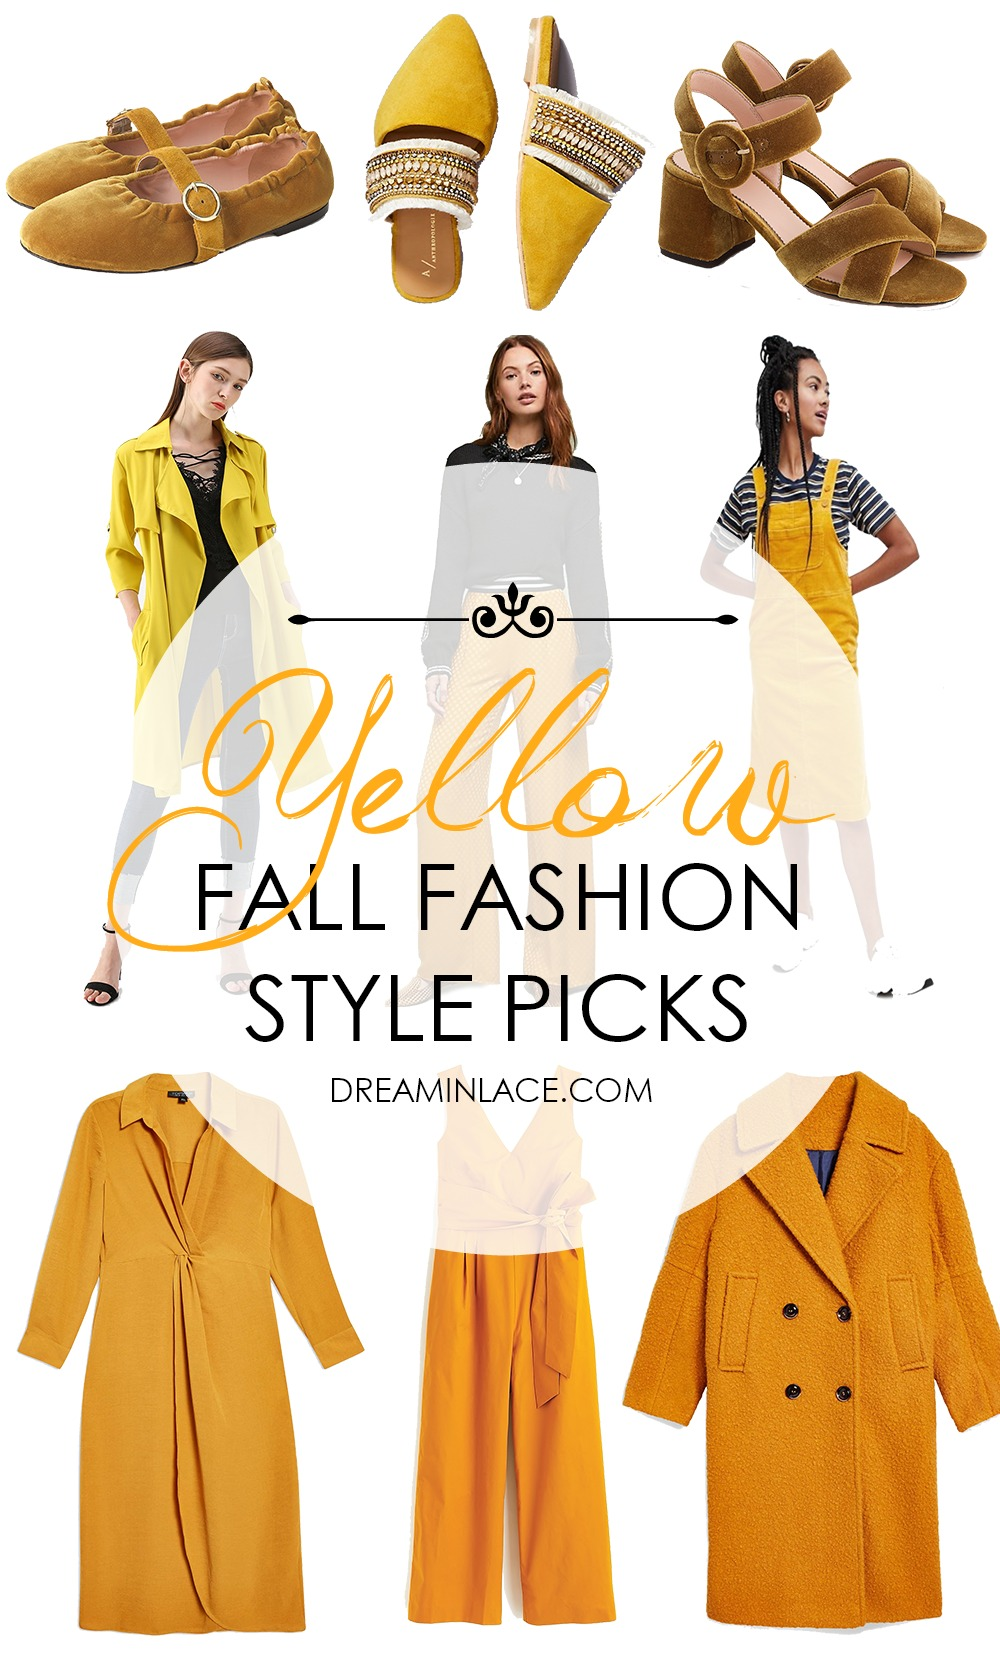 Yellow Fall Fashion Trend Style Picks for Your Wardrobe I DreaminLace.com #FallFashion #FallTrends #Style